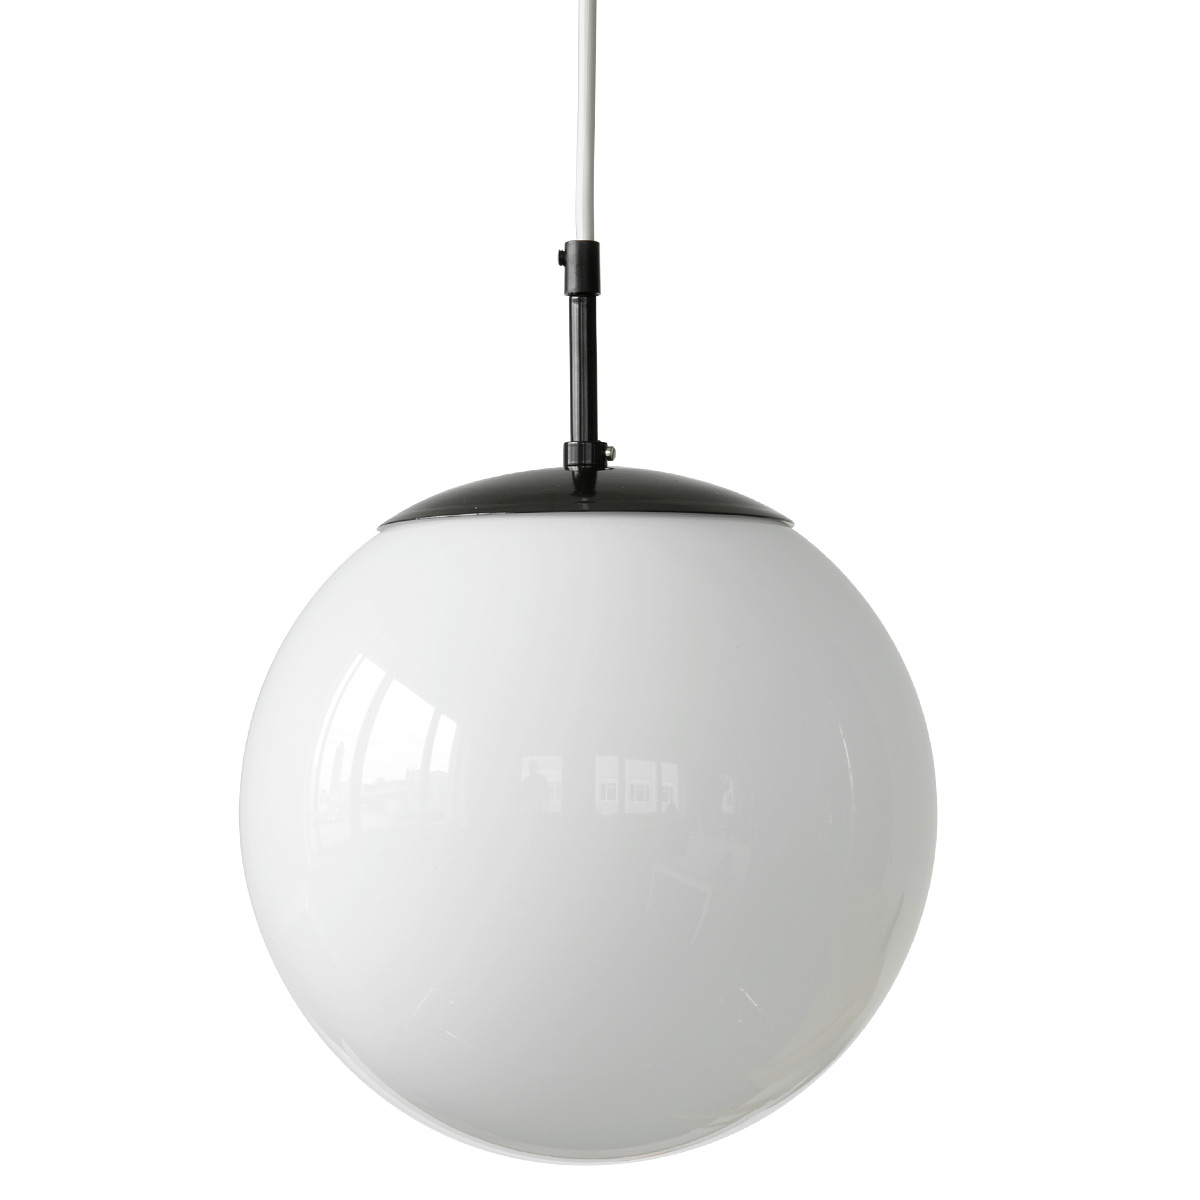 8cefea095a2 Image 1: Classic: White glass globe lamp wit 25 cm glass ball, jet black  mounting and white cable